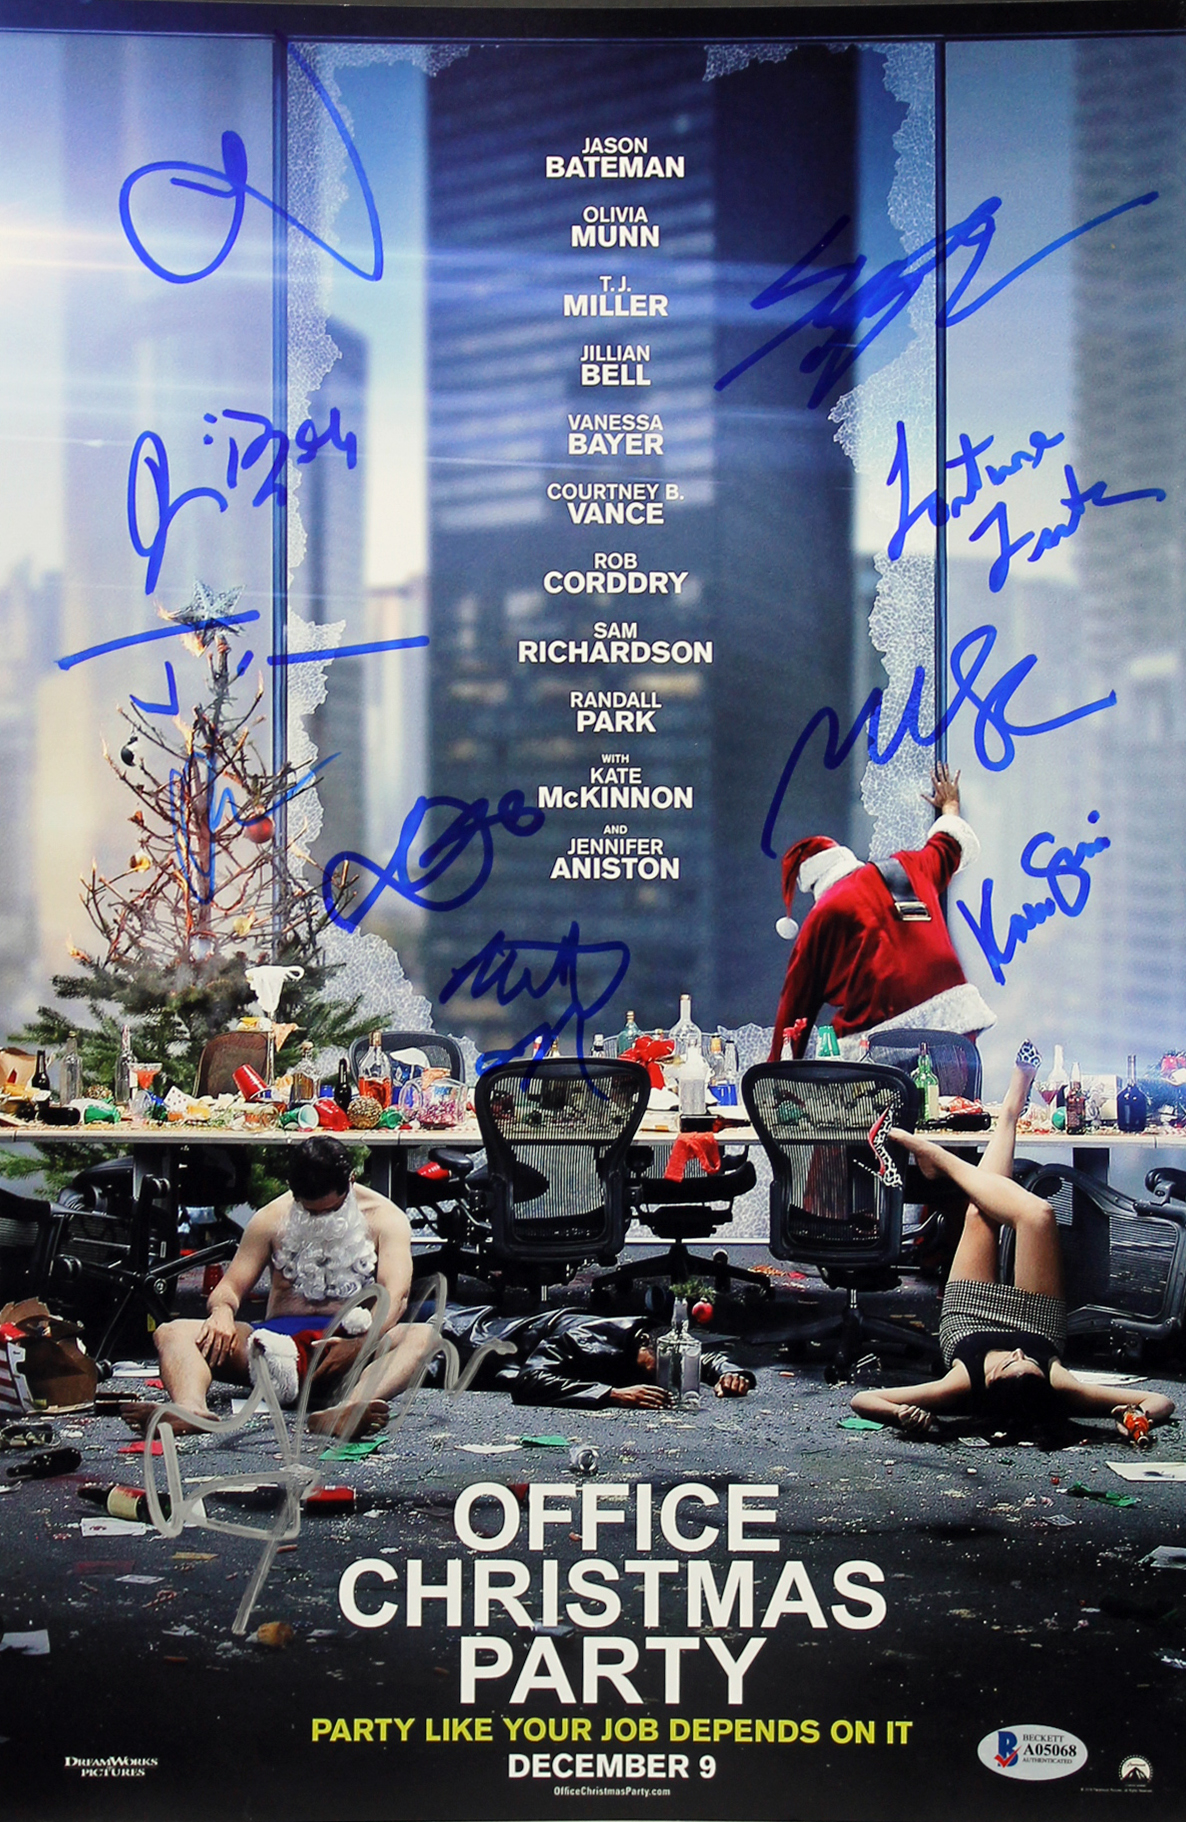 Office Christmas Party Cast (10) Munn, Miller Signed 11x17 Photo BAS ...